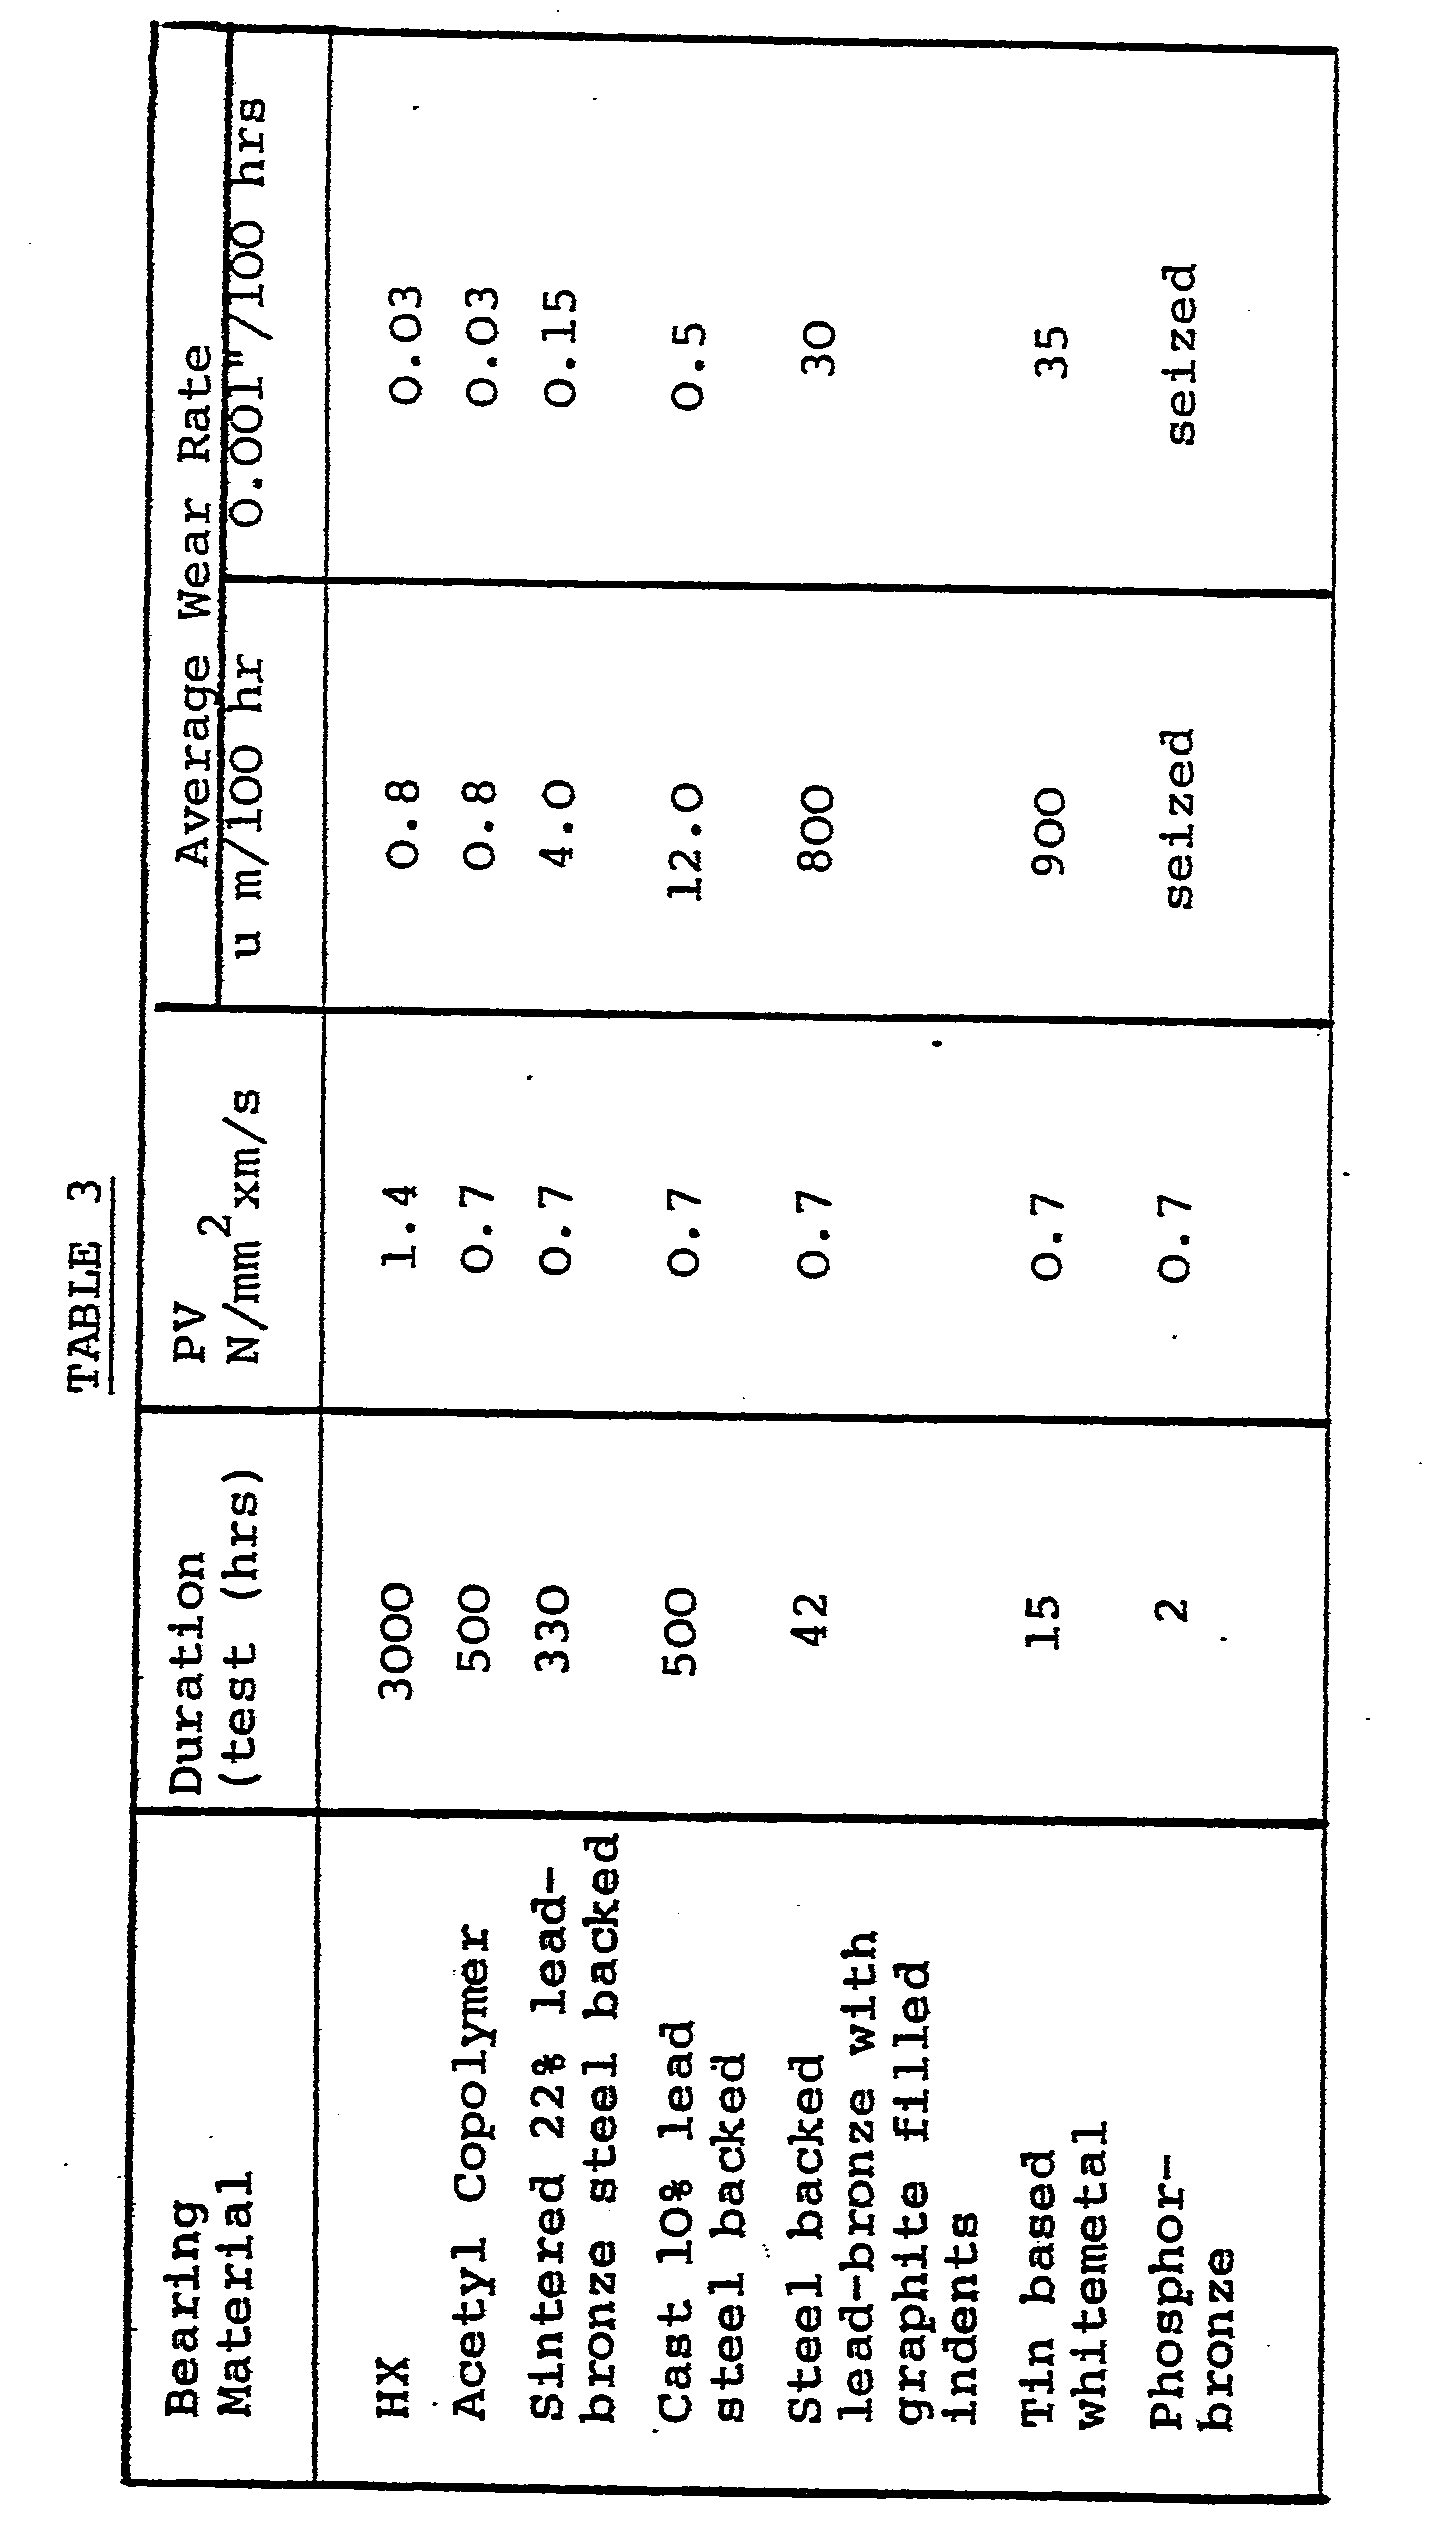 EP A2 position of matter incorporating polyether ether